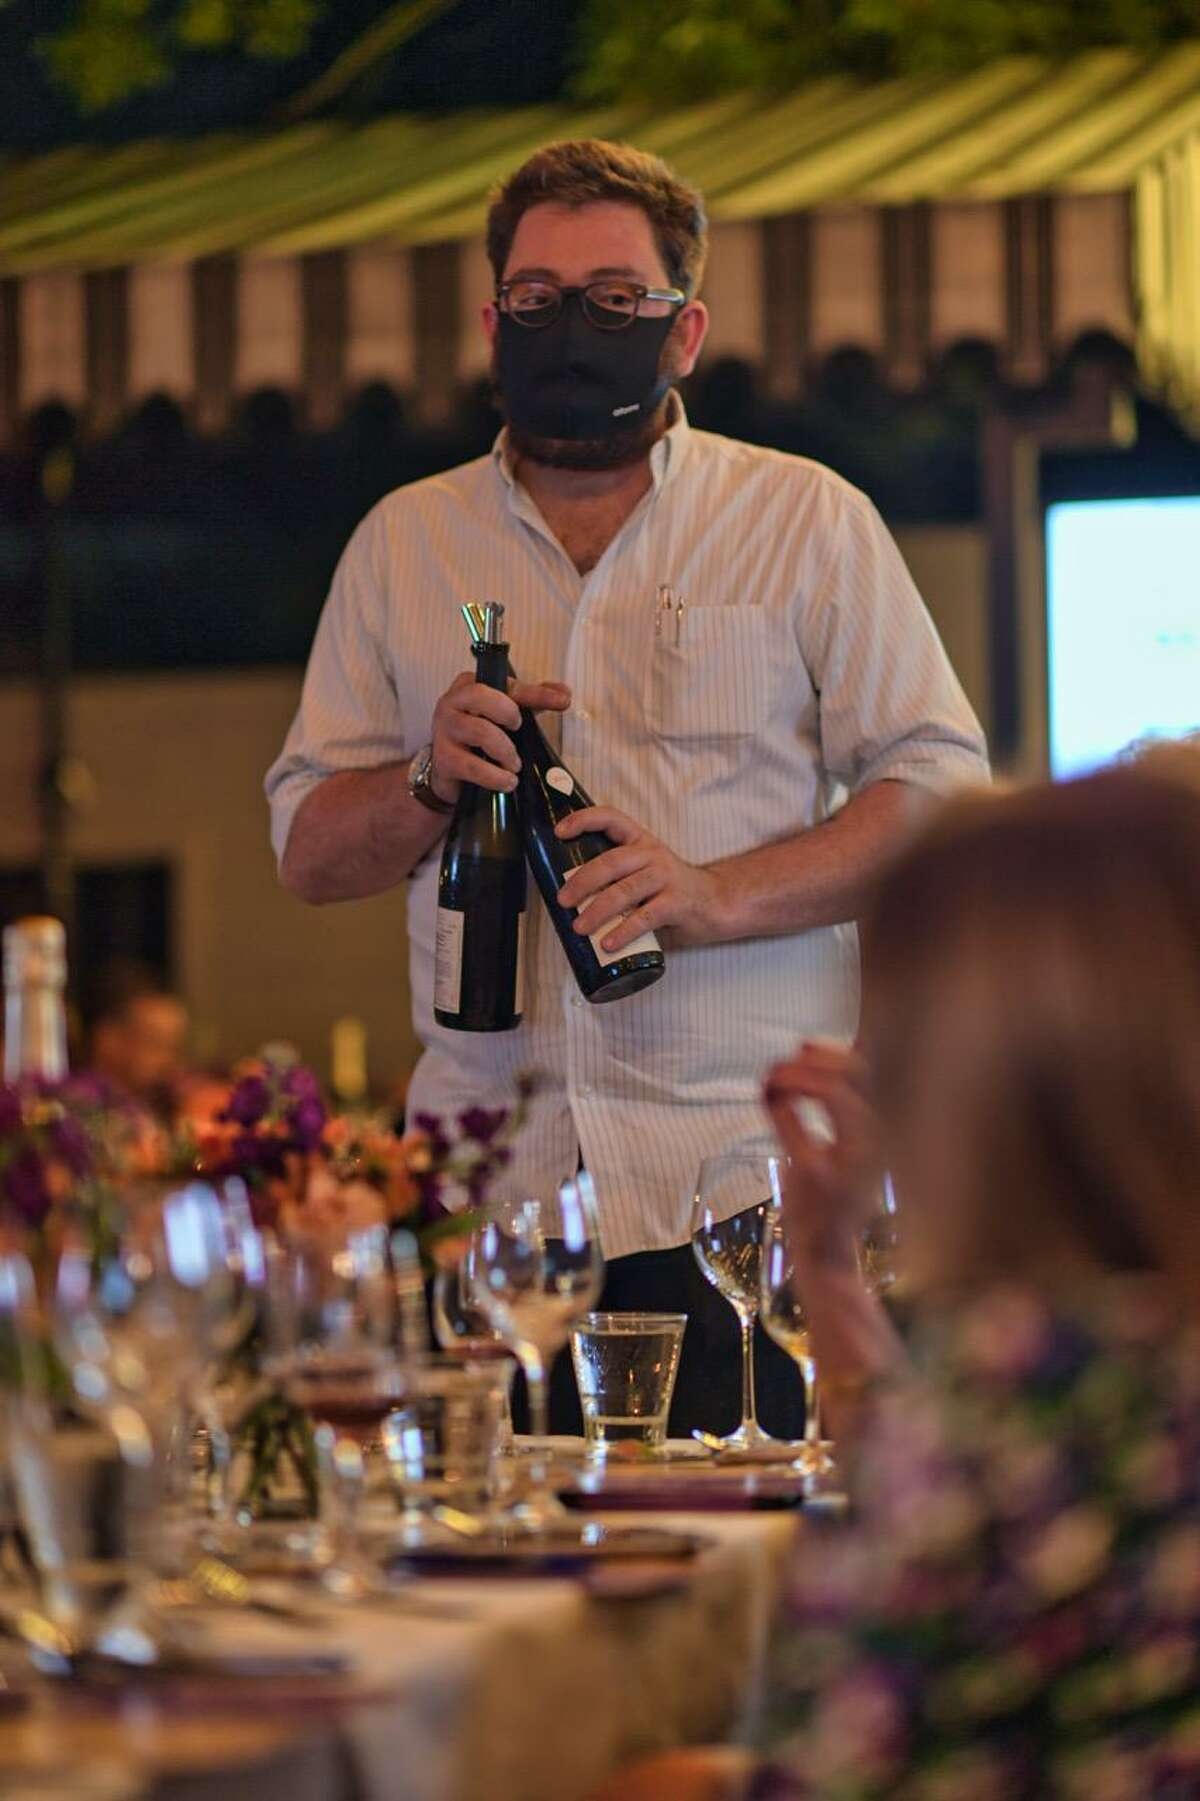 Justin Vann at the 2020 Iron Sommelier competition